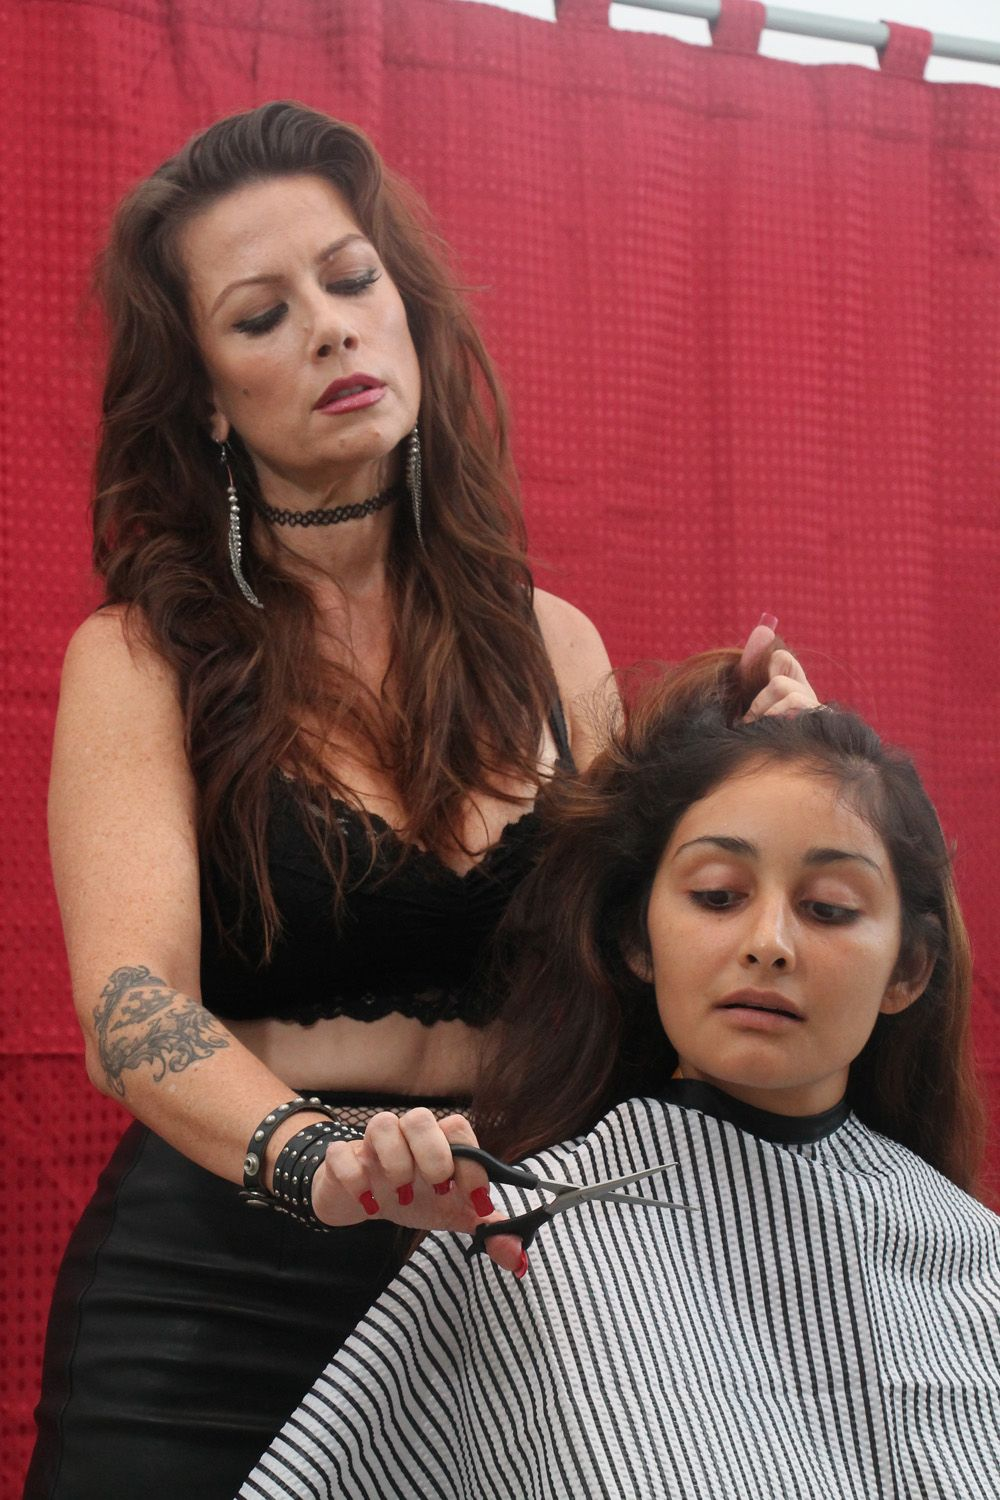 Forced Female Haircut : forced, female, haircut, Ready, Scissors..., Shaved, Women,, Forced, Haircut,